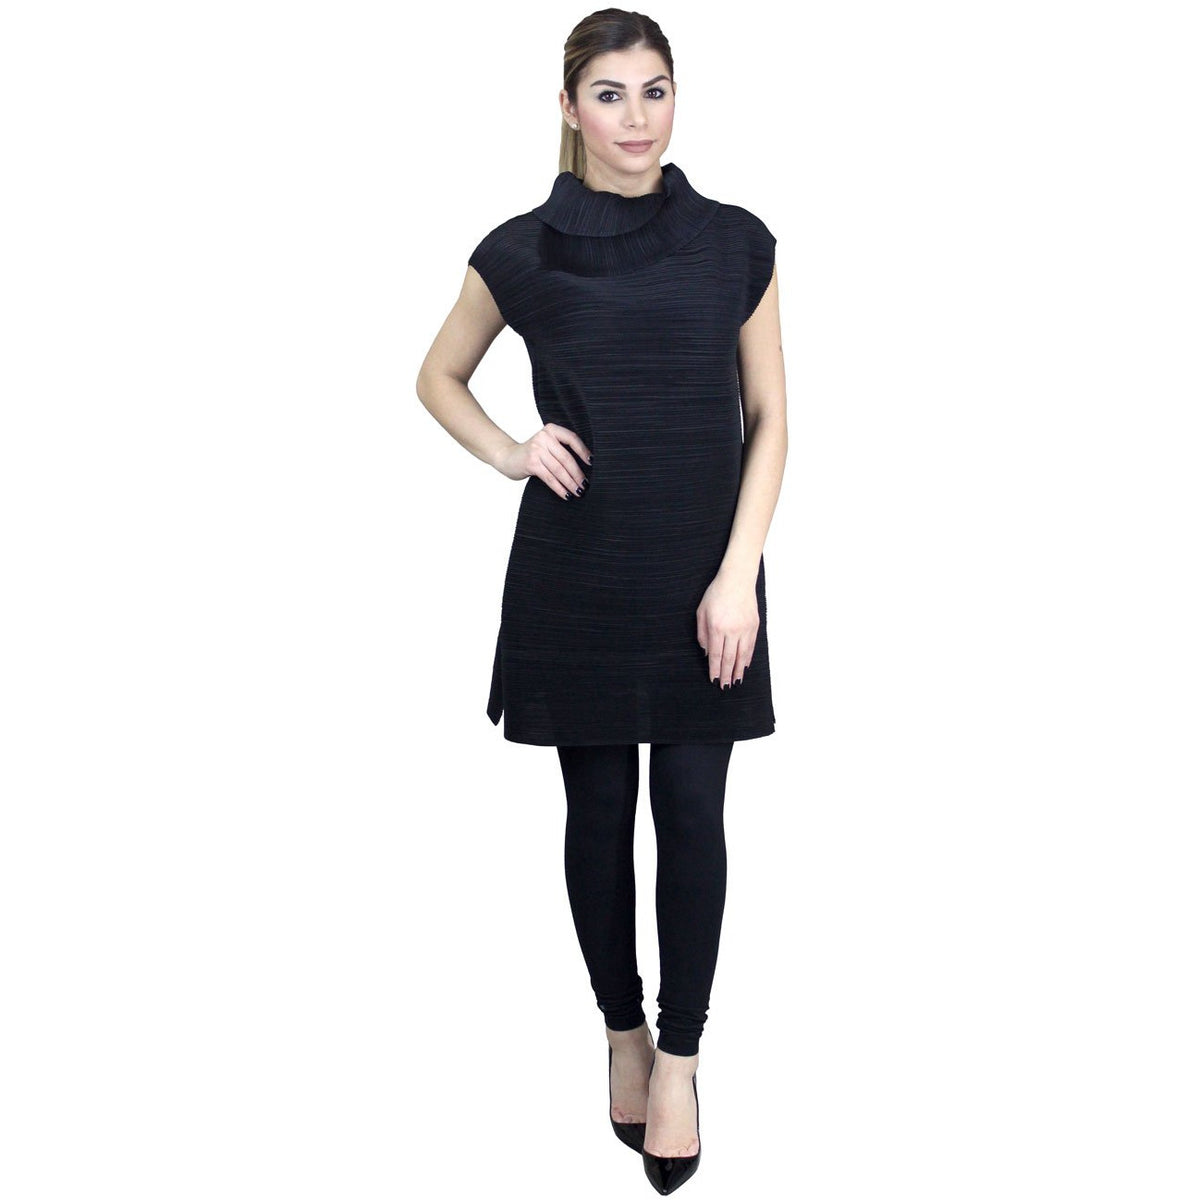 Accordion Tunic - Black